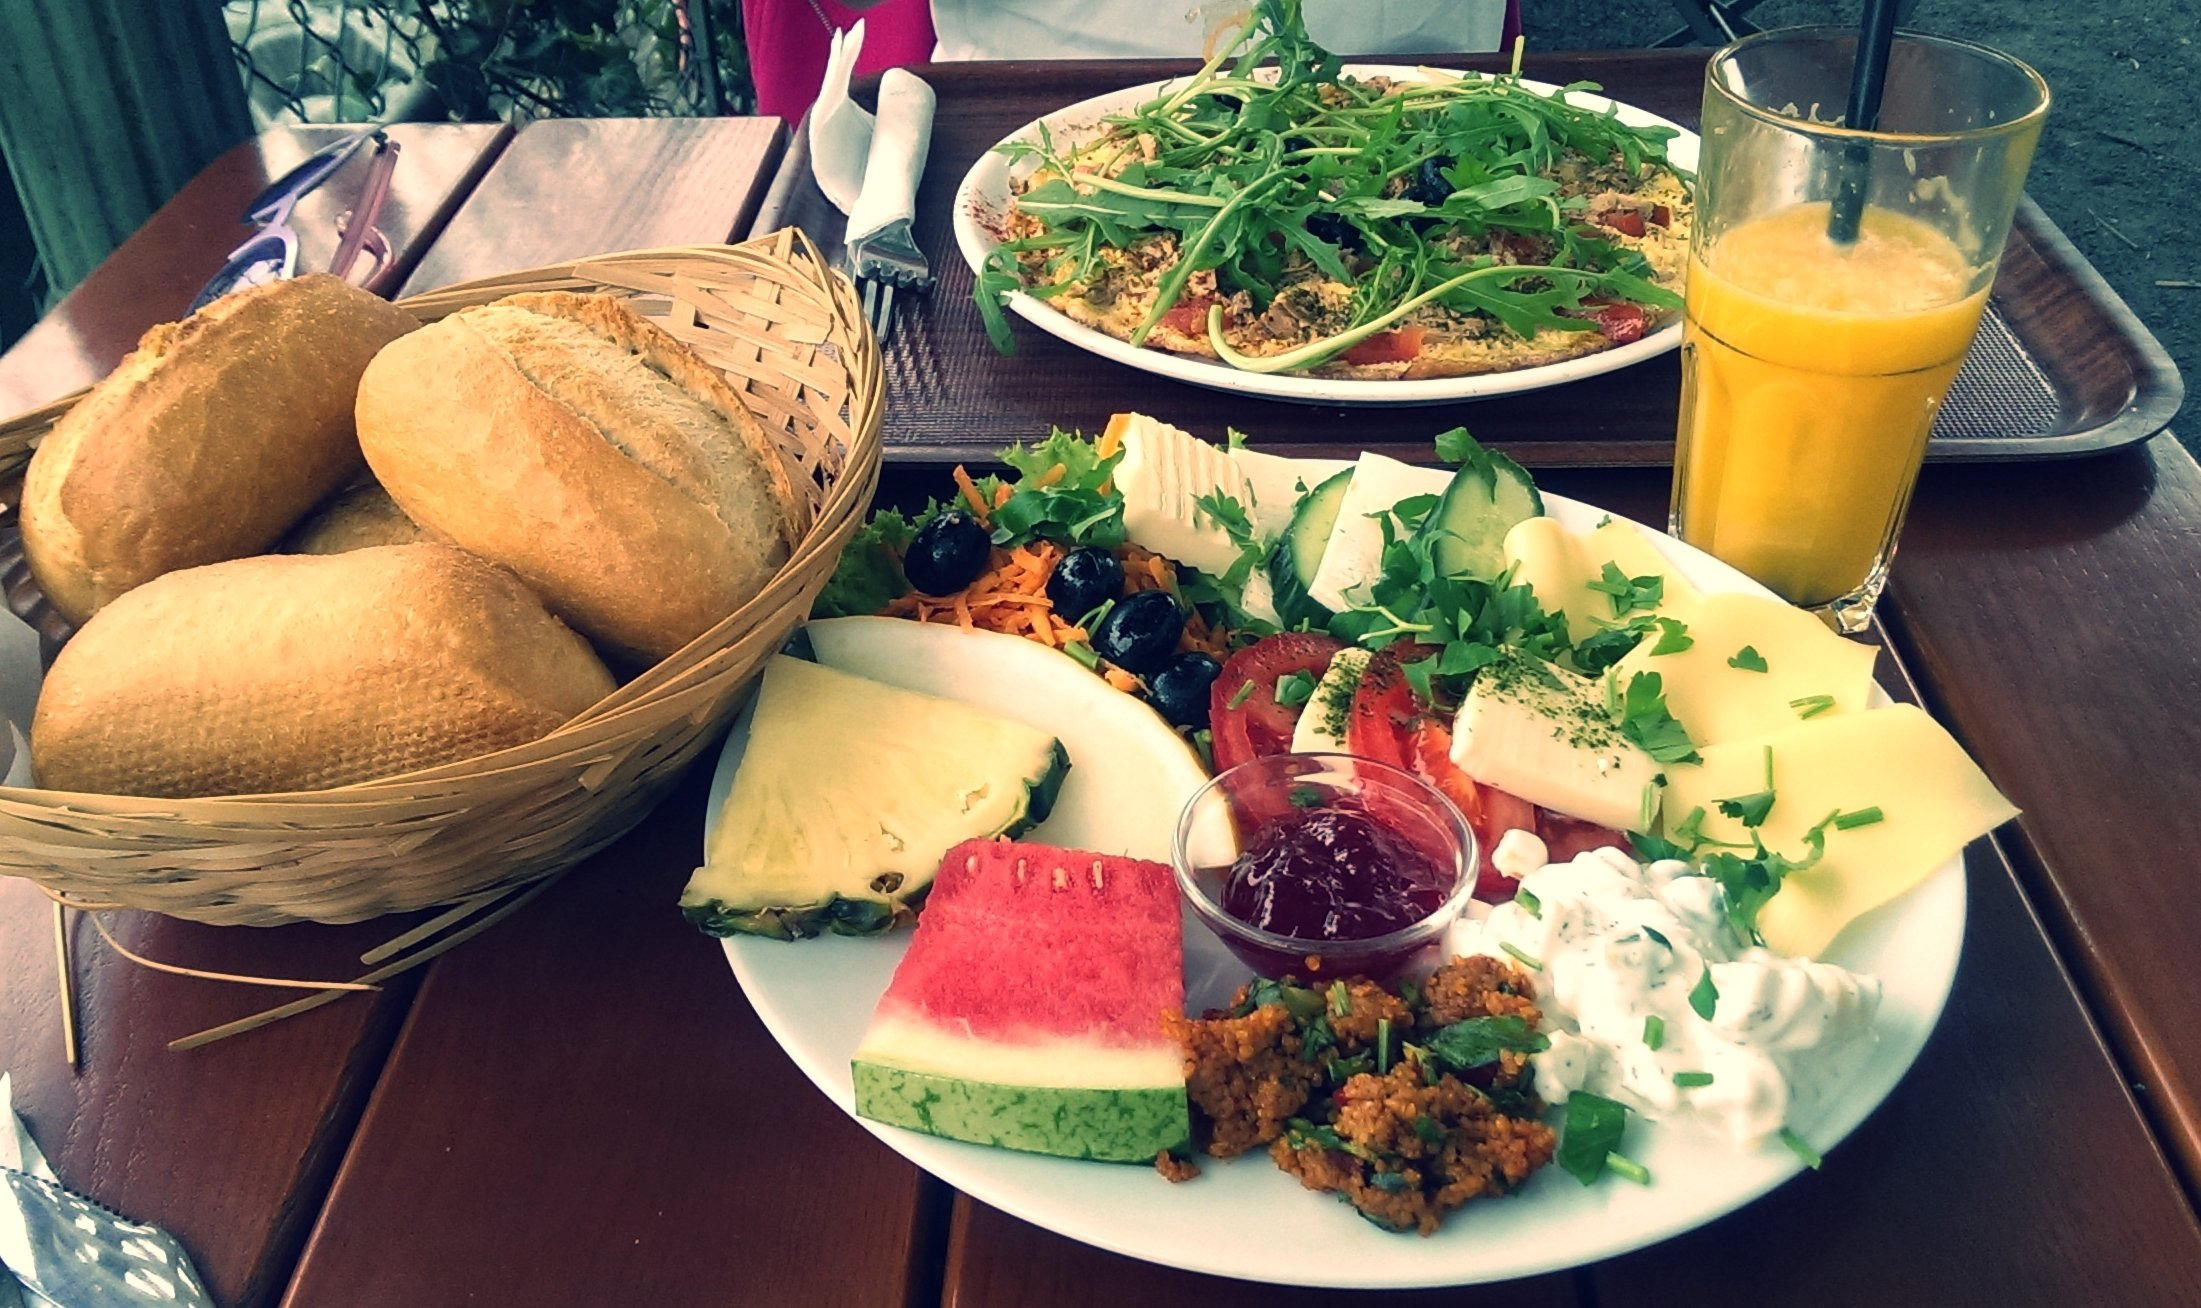 Best brunch in Berlin @minkaguides